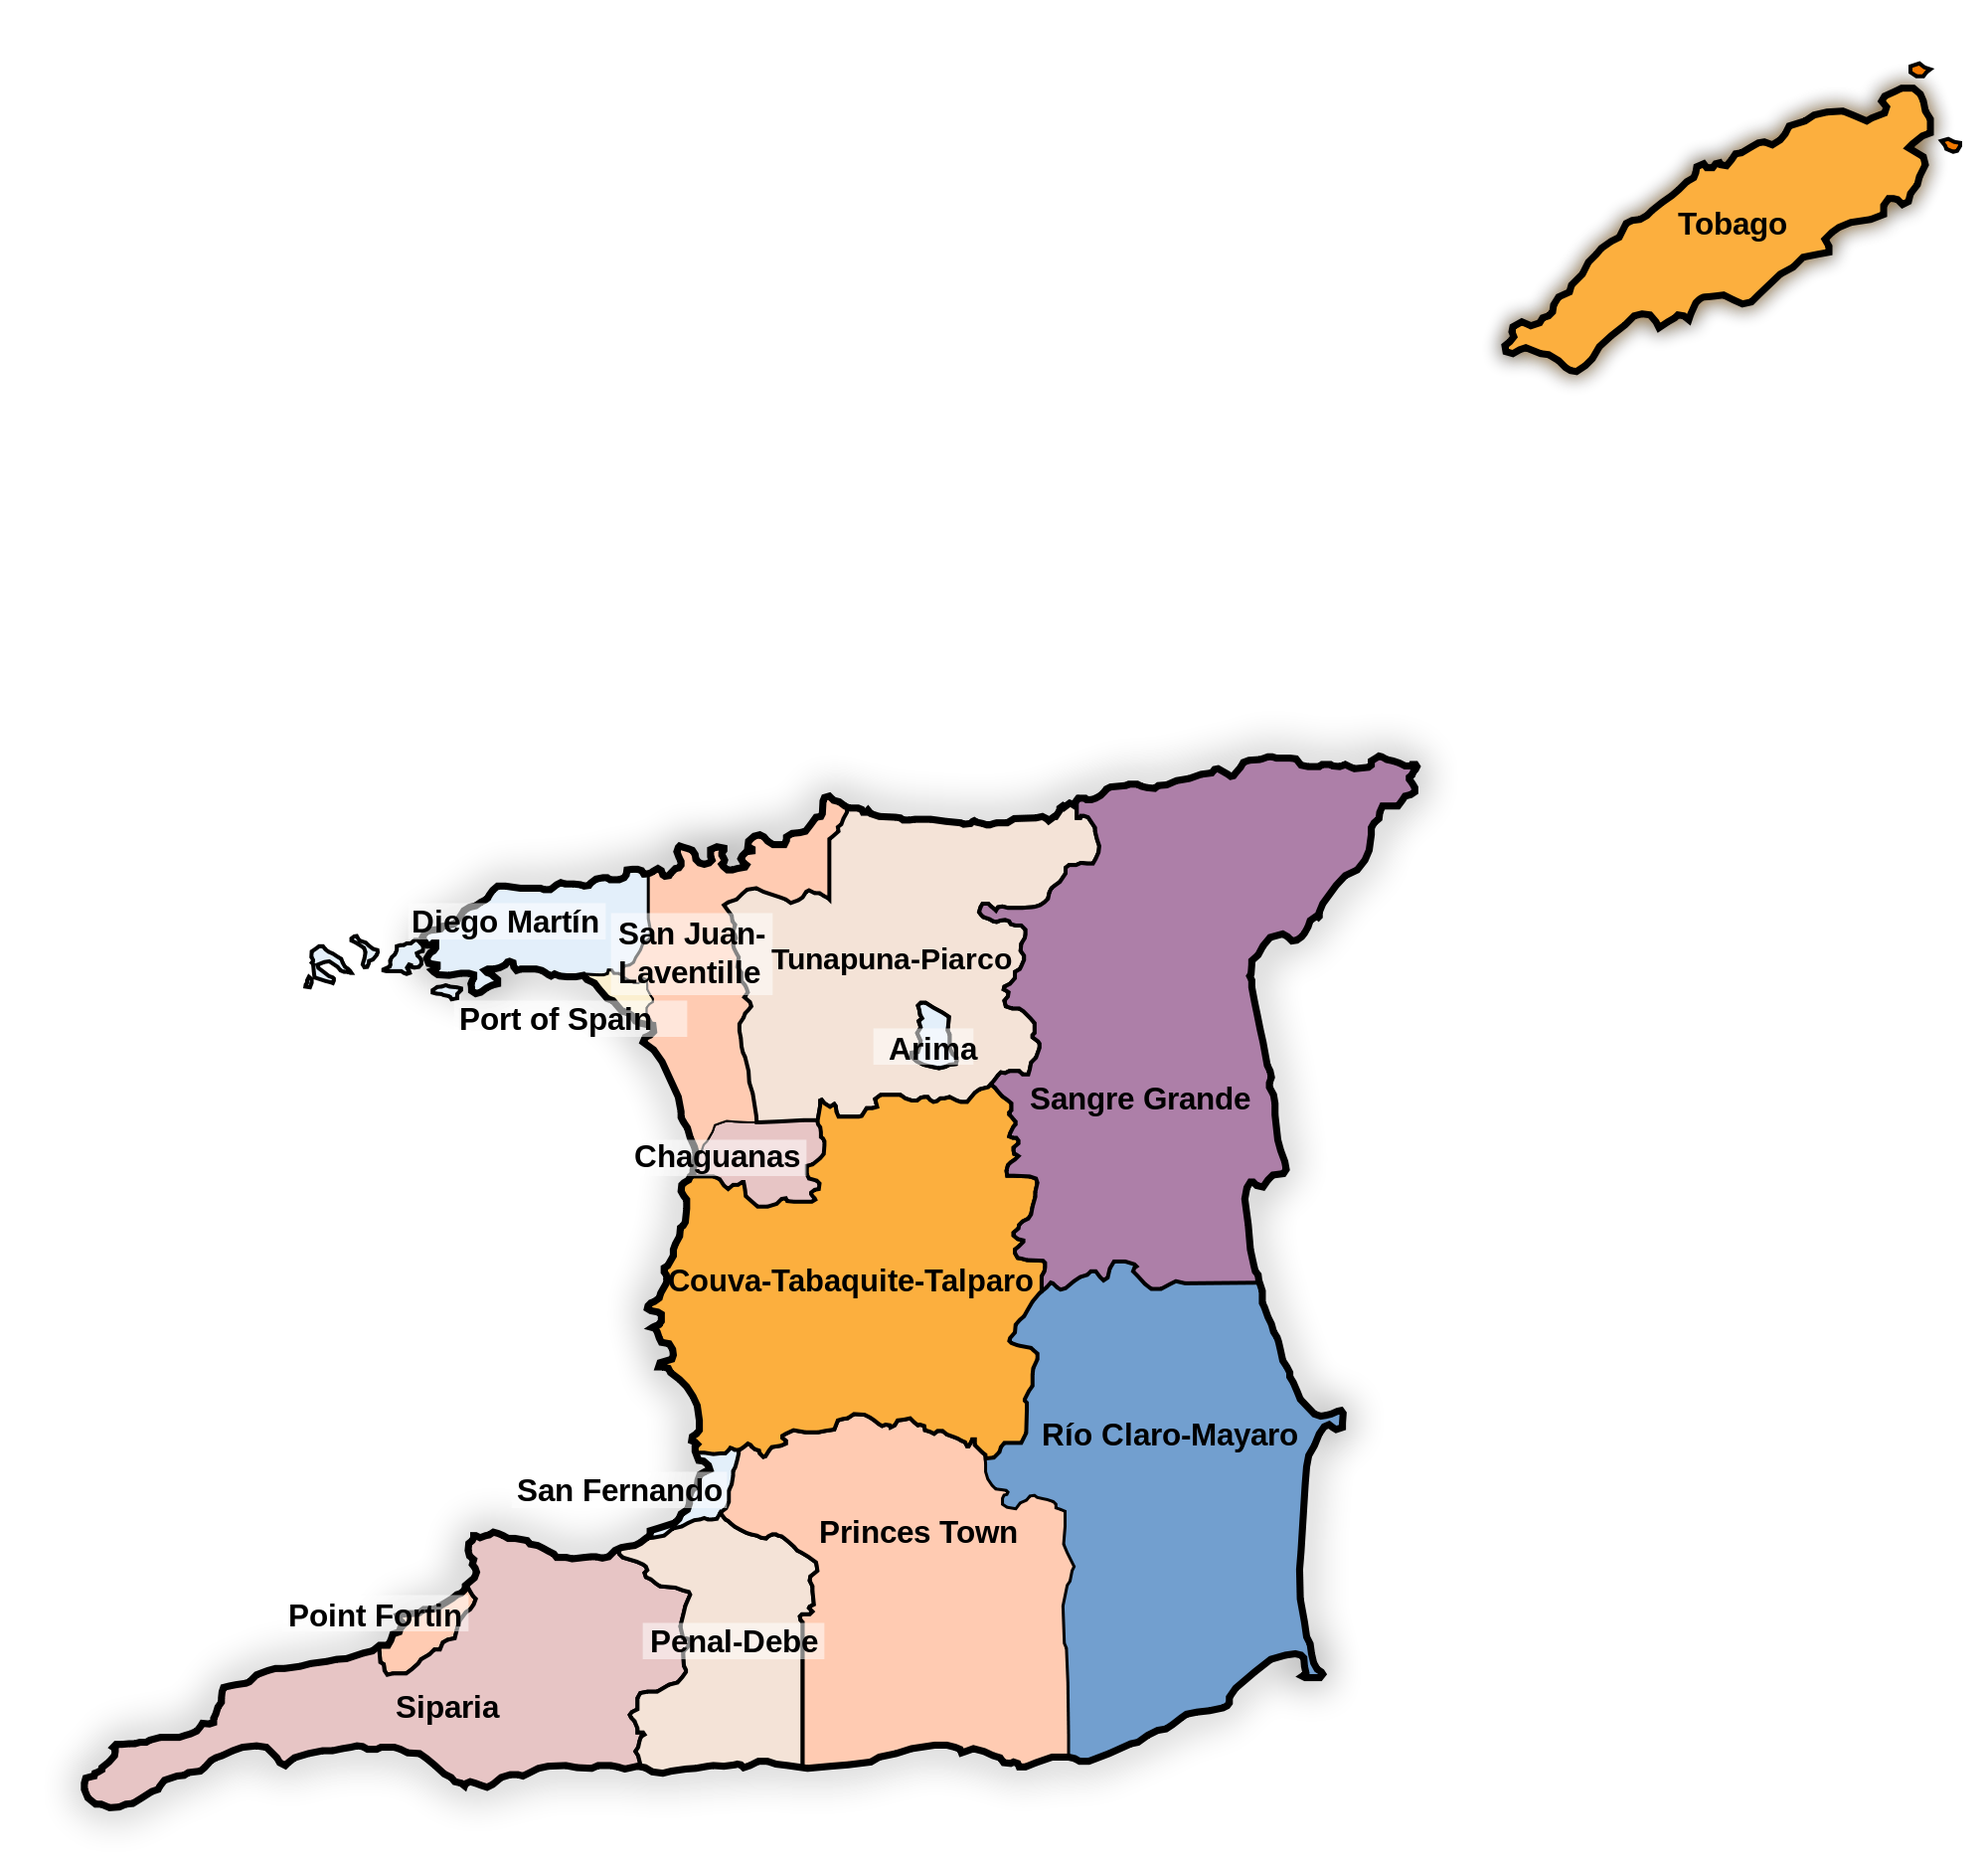 Trinidad and Tobago Administrative divisions